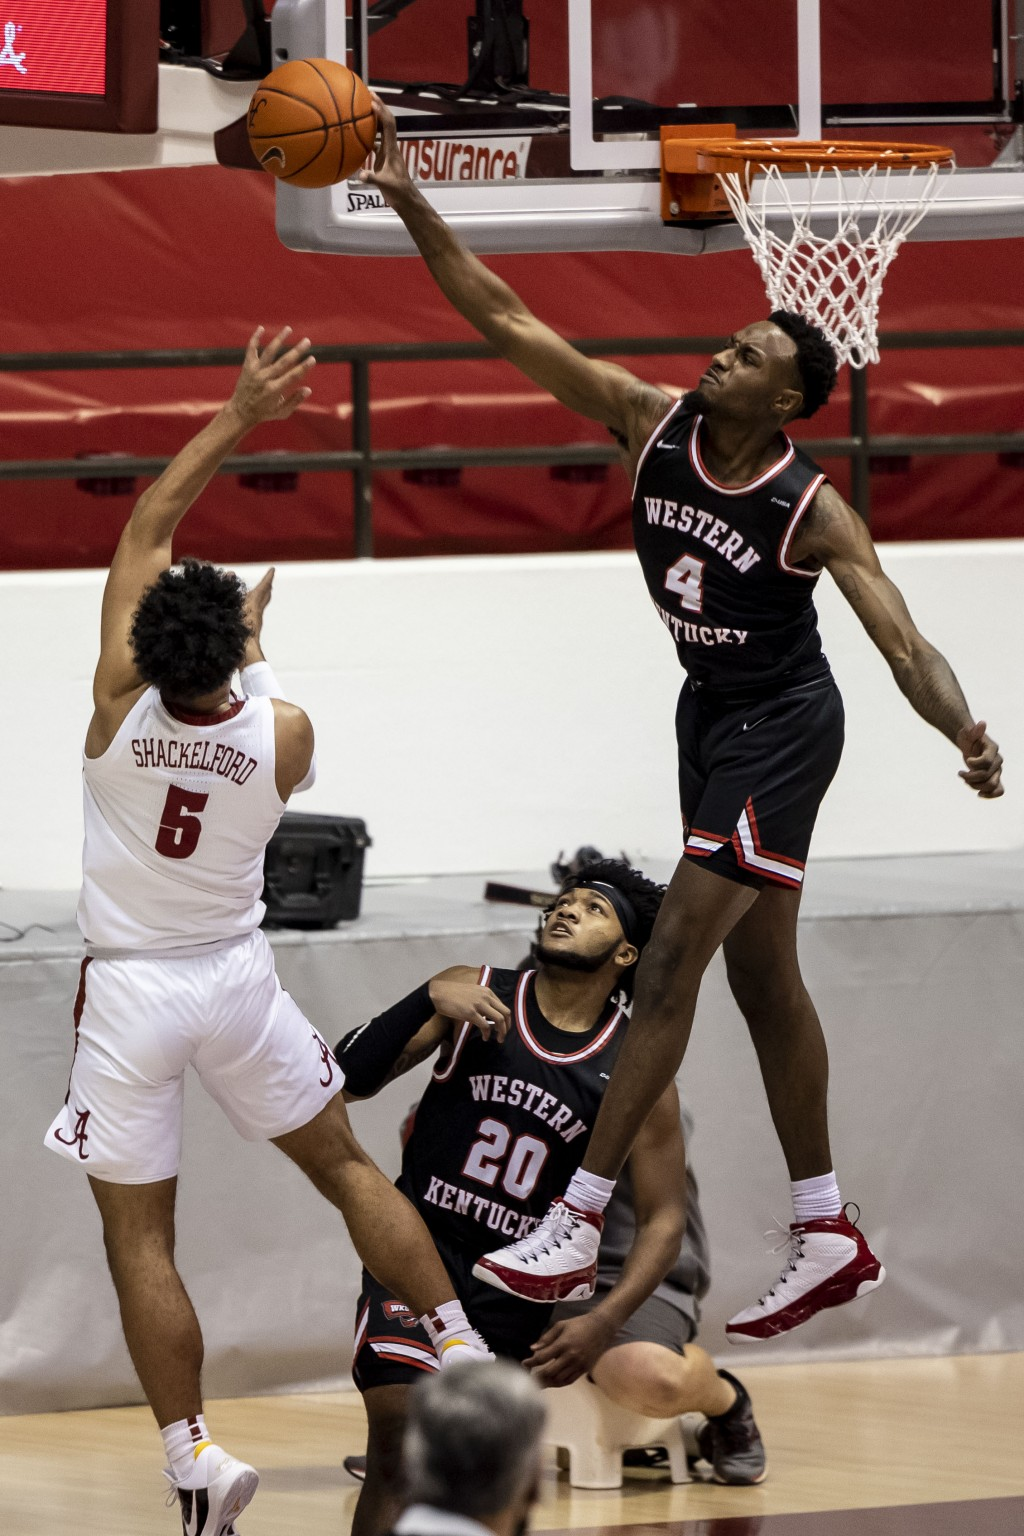 Western Kentucky guard Josh Anderson (4) blocks a shot from Alabama guard Jaden Shackelford (5) during the first half of an NCAA college basketball ga...